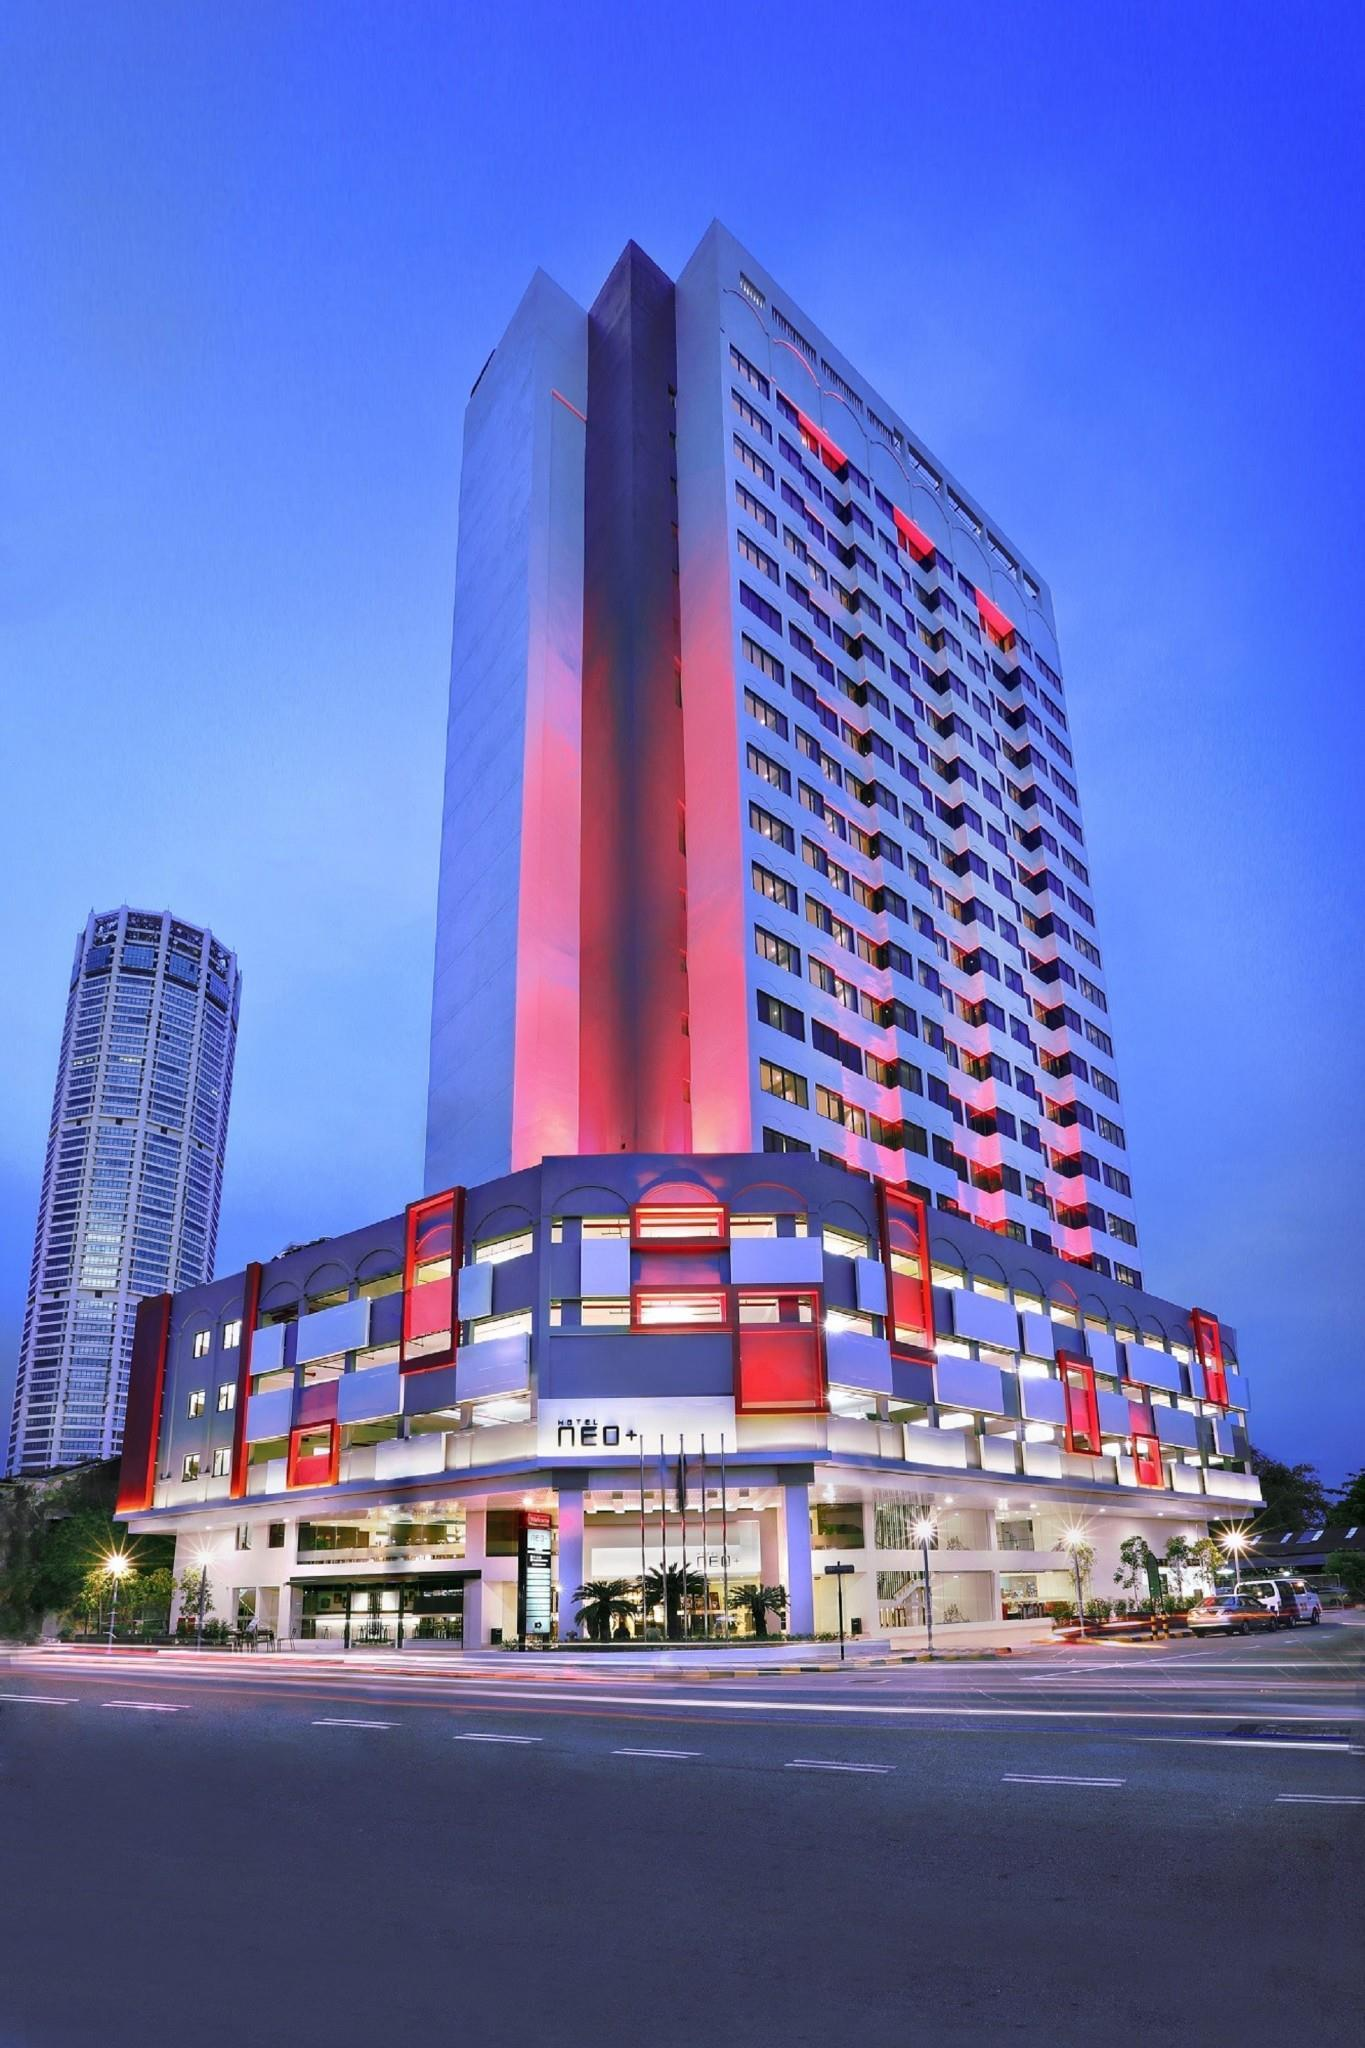 Hotel Neo+ Penang By Aston